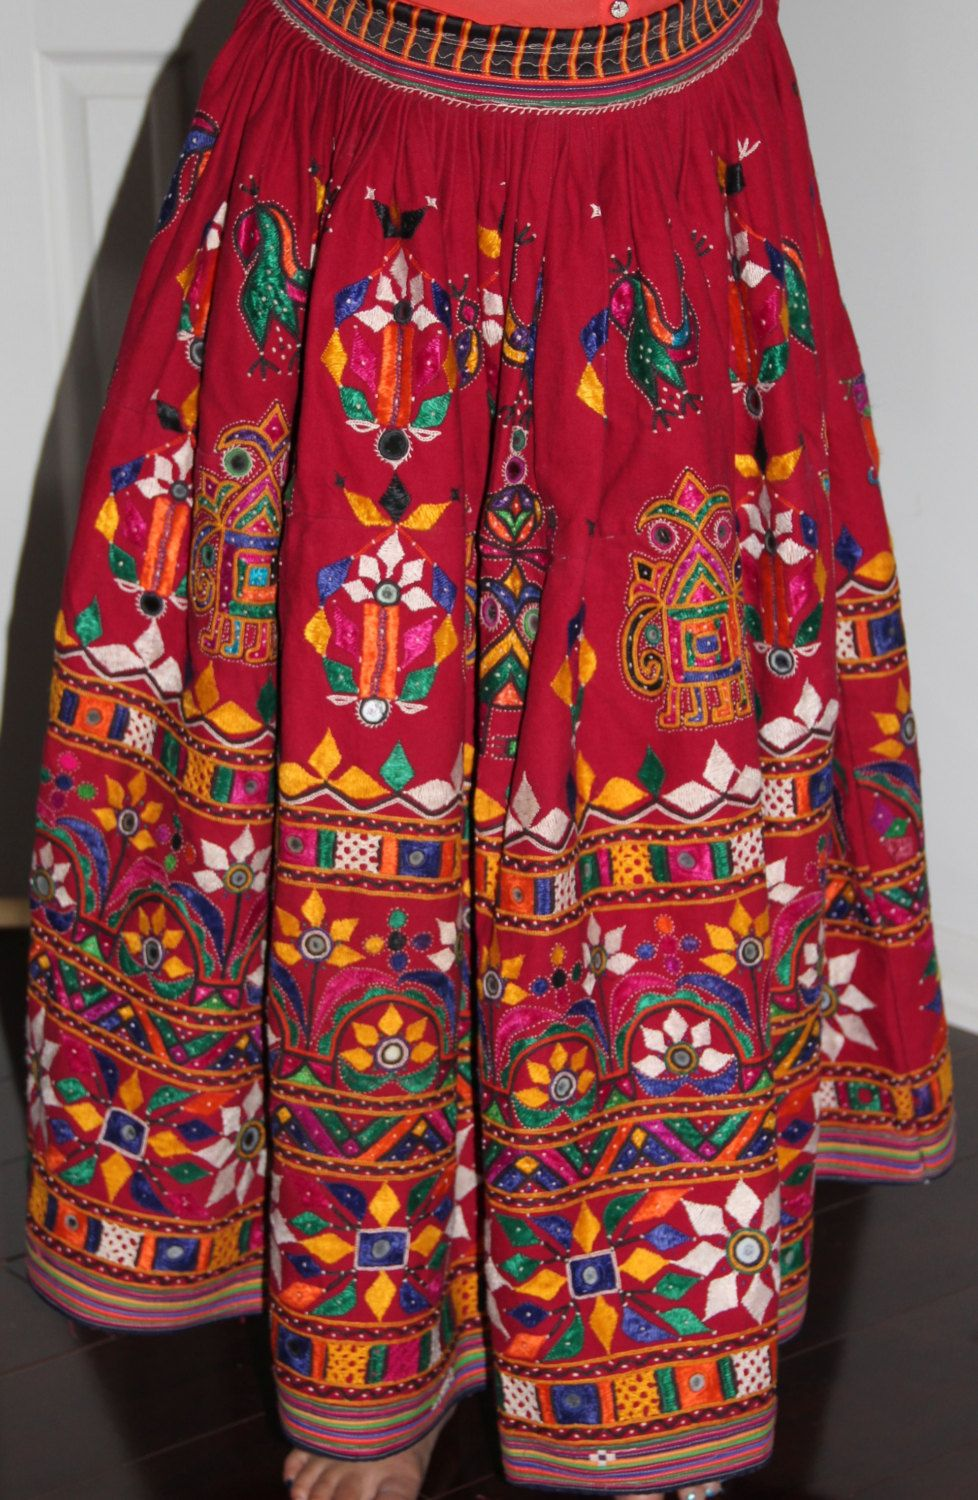 fd4a8d30e01f05 Beautiful Original Vintage Rabari Ghagra{Skirt} with Kutchi hand embroidery  accentuated with mirror work in Maroon colour by EleganceByRajul on Etsy